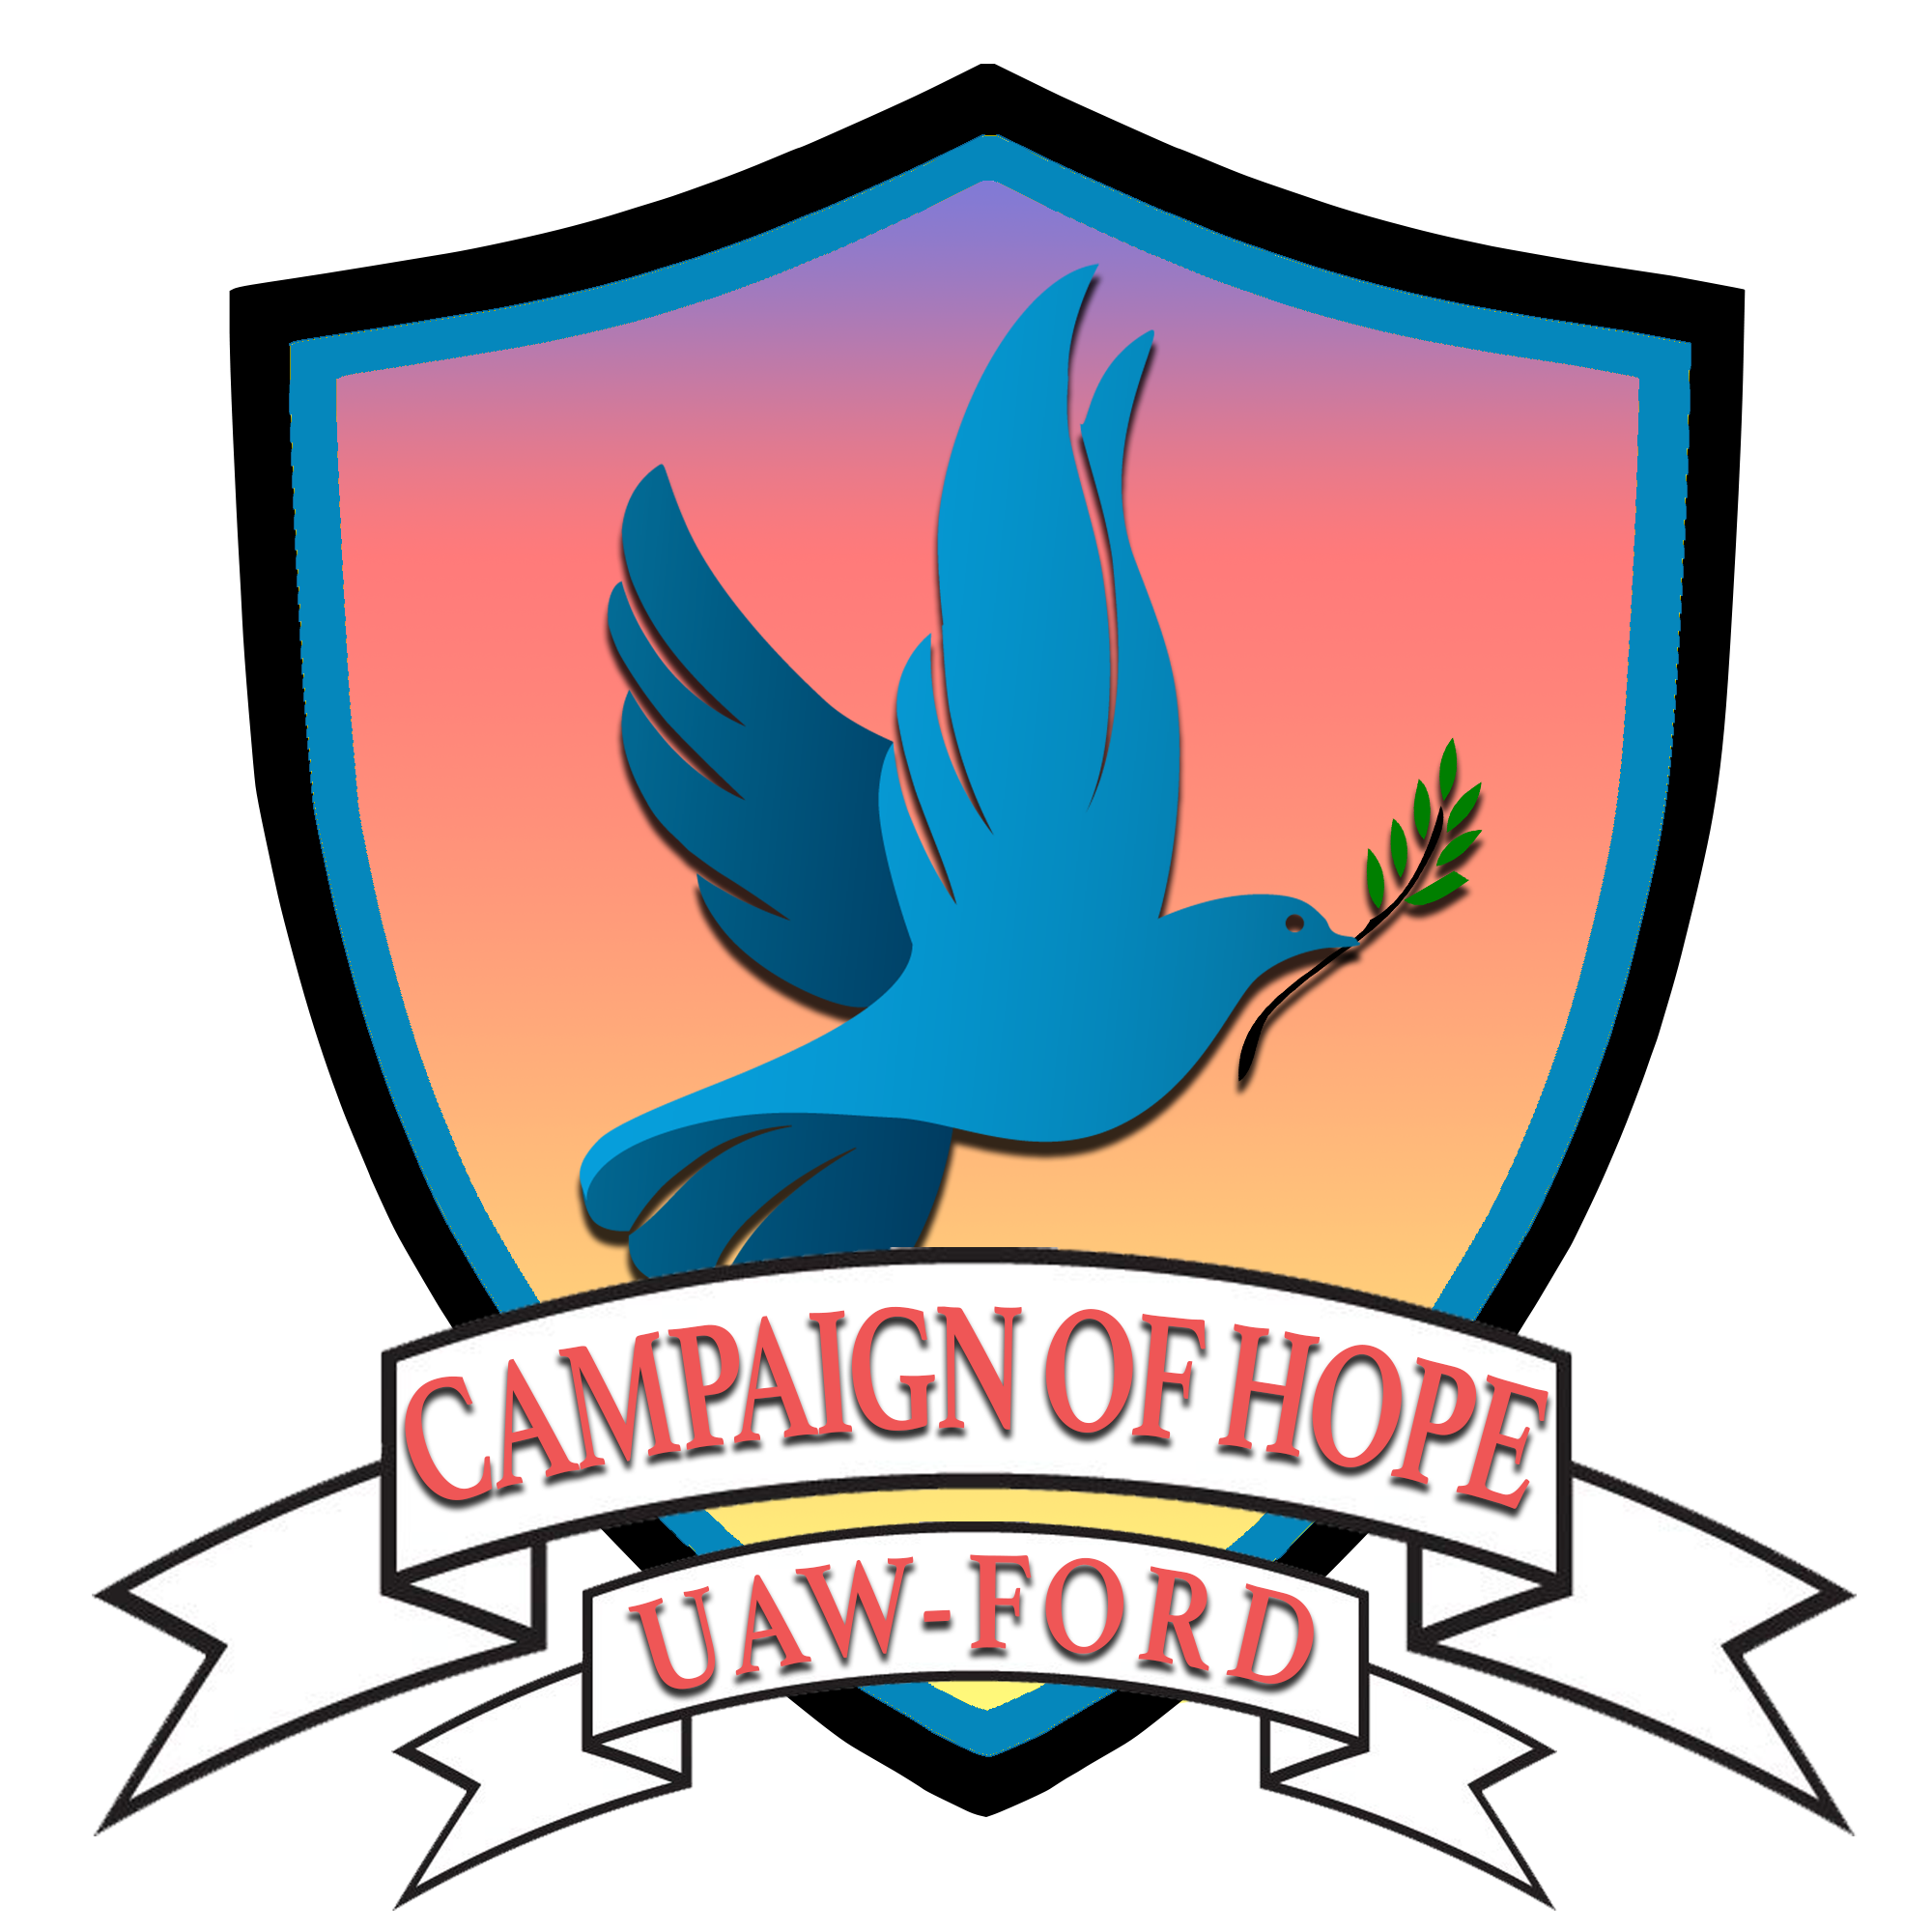 UAW-Ford Campaign of Hope!